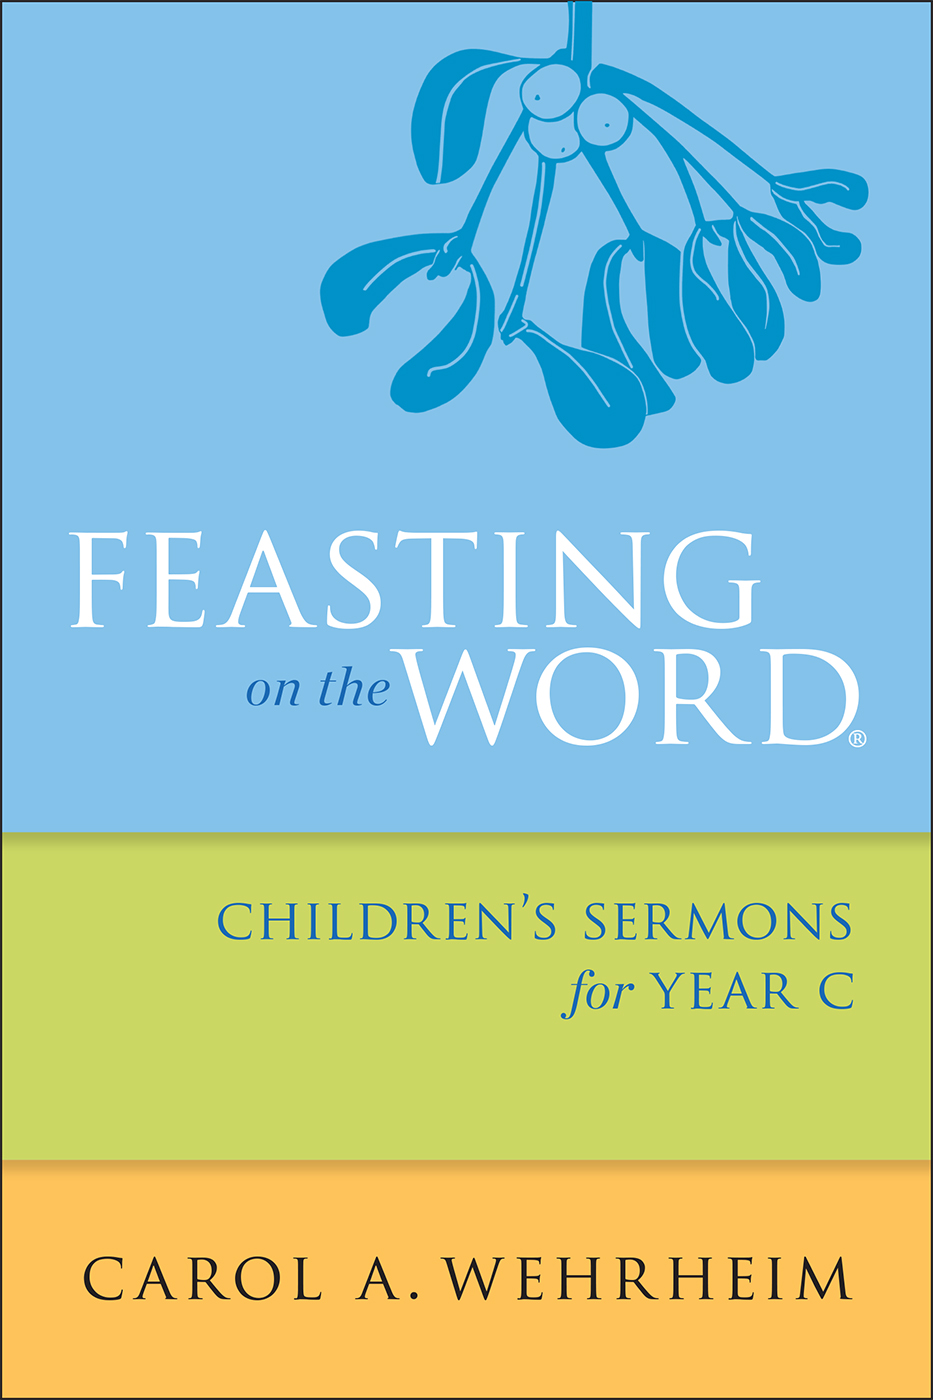 Feasting on the Word Children's Sermons for Year C